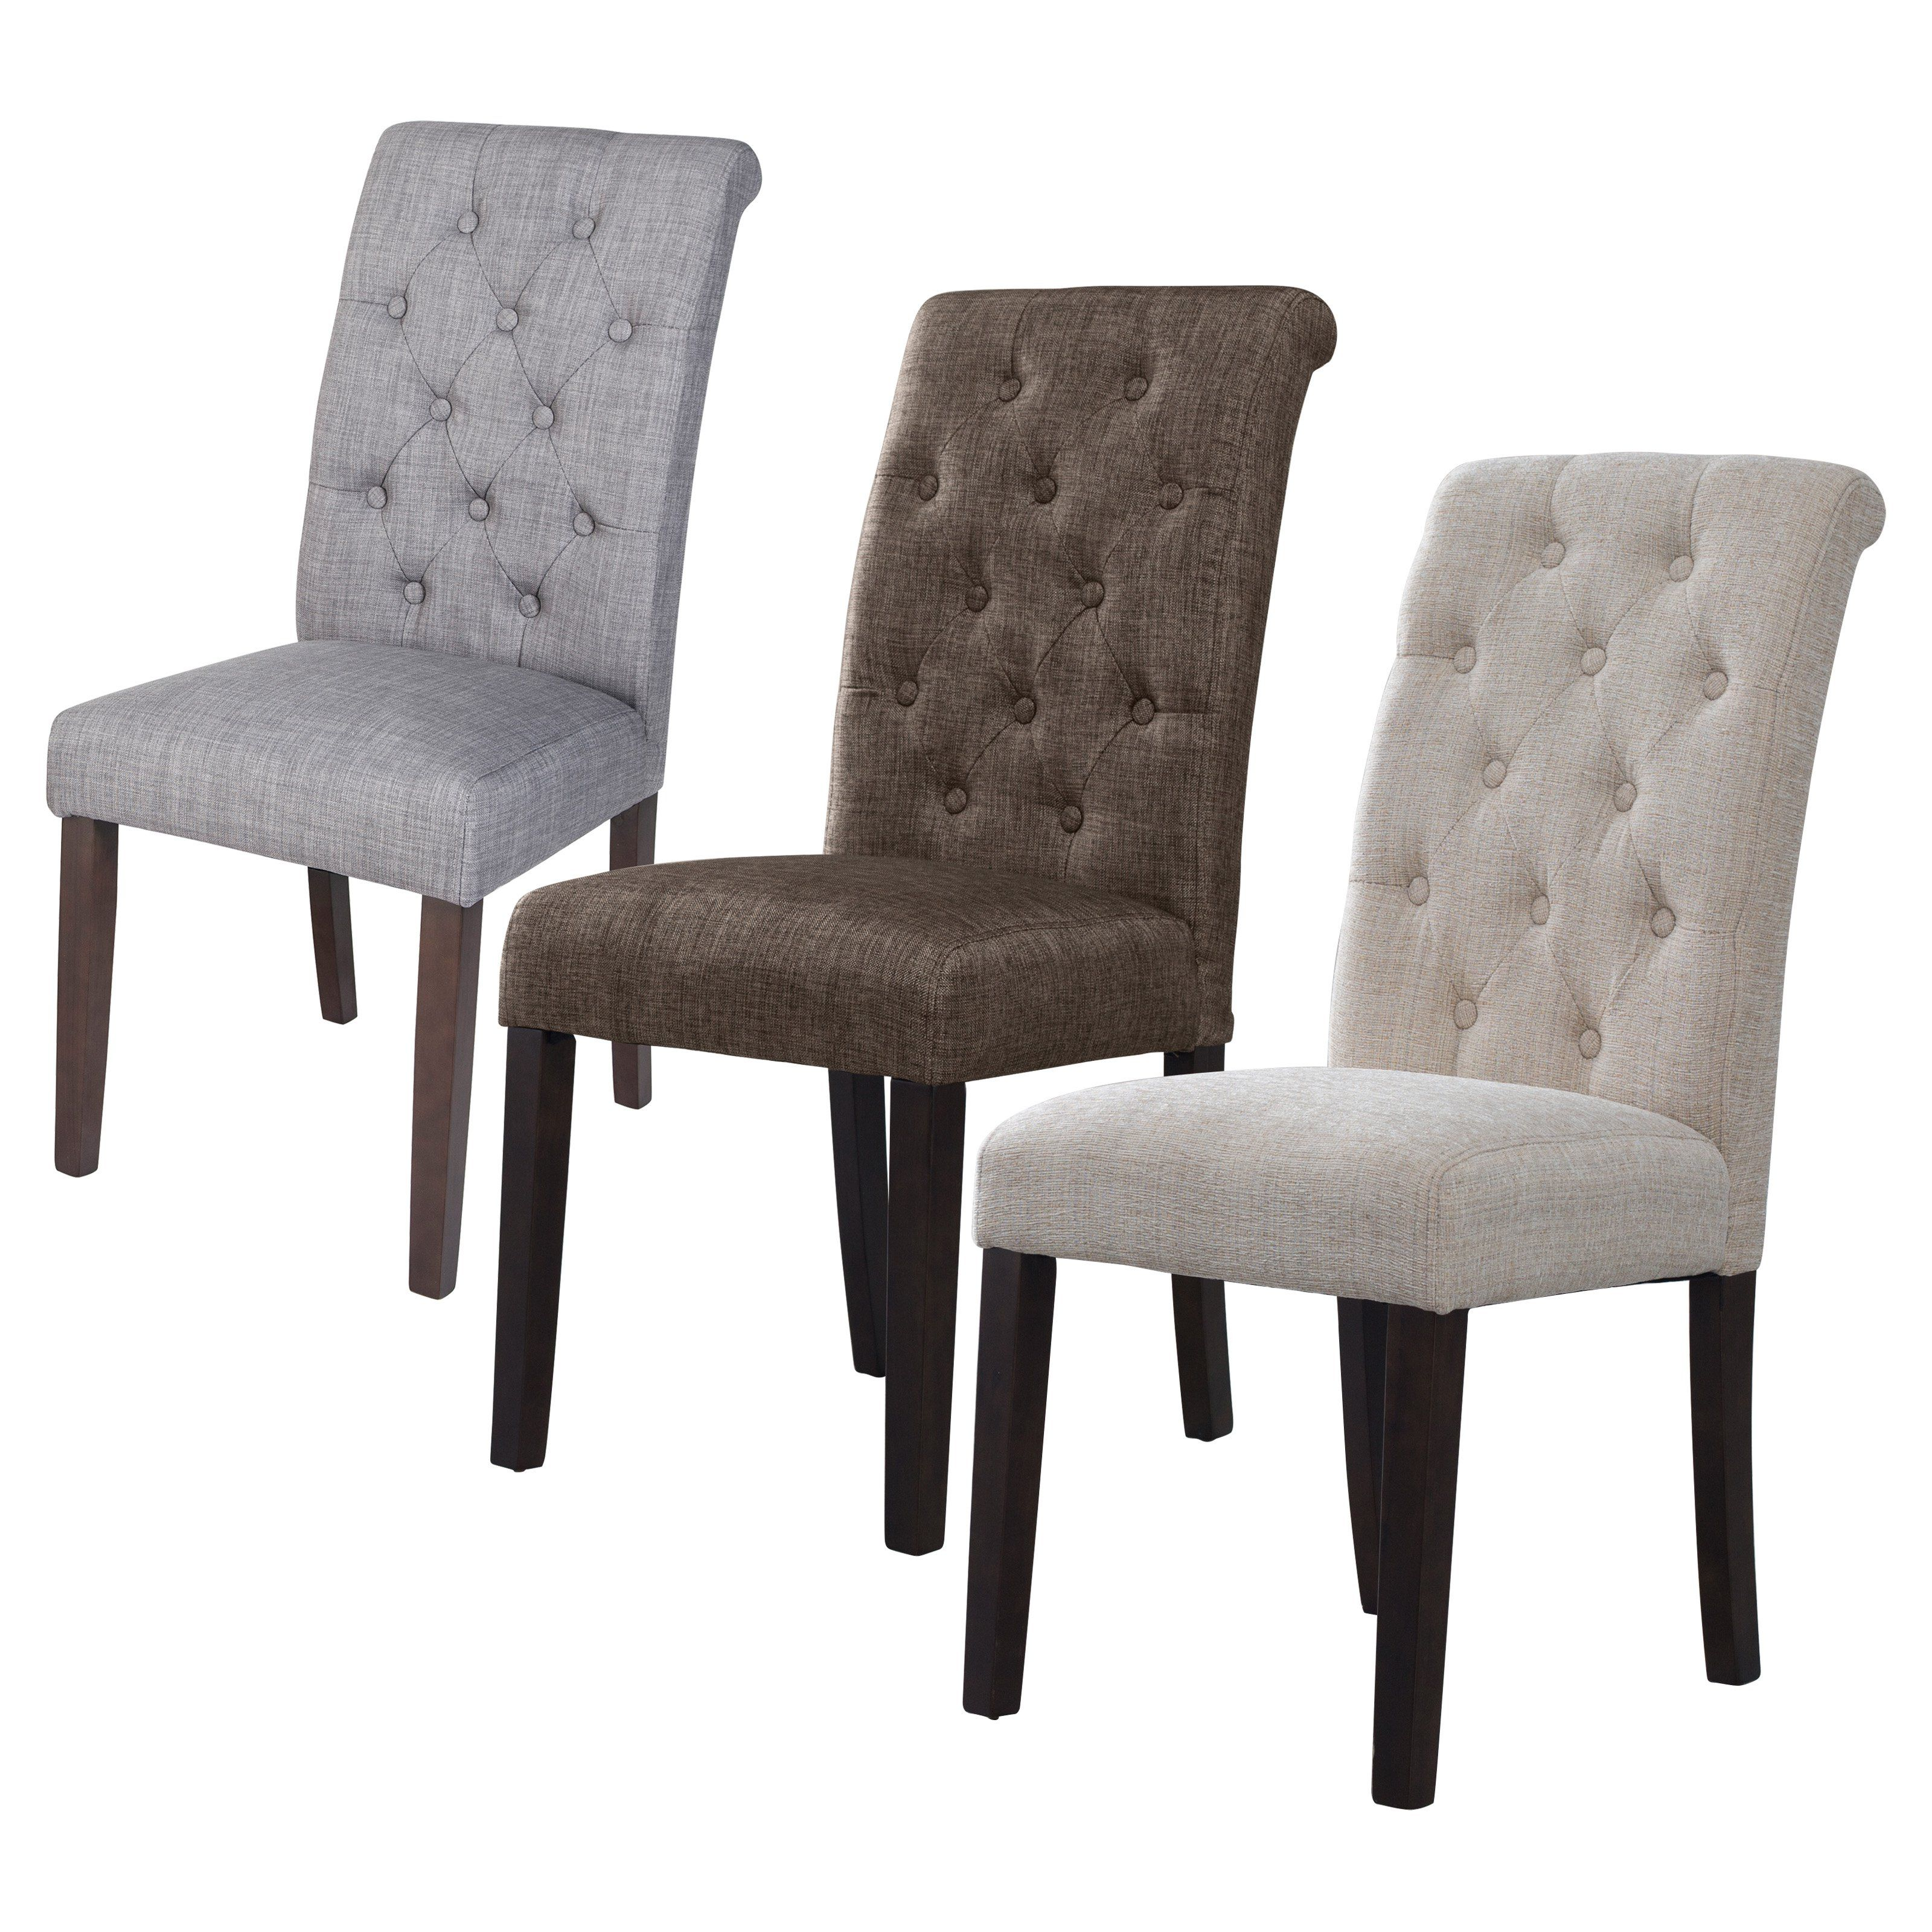 Tufted Parsons Dining Chairs Set Of 2 Button Tufted For A Tailored Look The Tufted Parsons Dining Chair Set Of 2 Upgrade Parsons Dining Chairs Dining Chairs Living Dining Combo